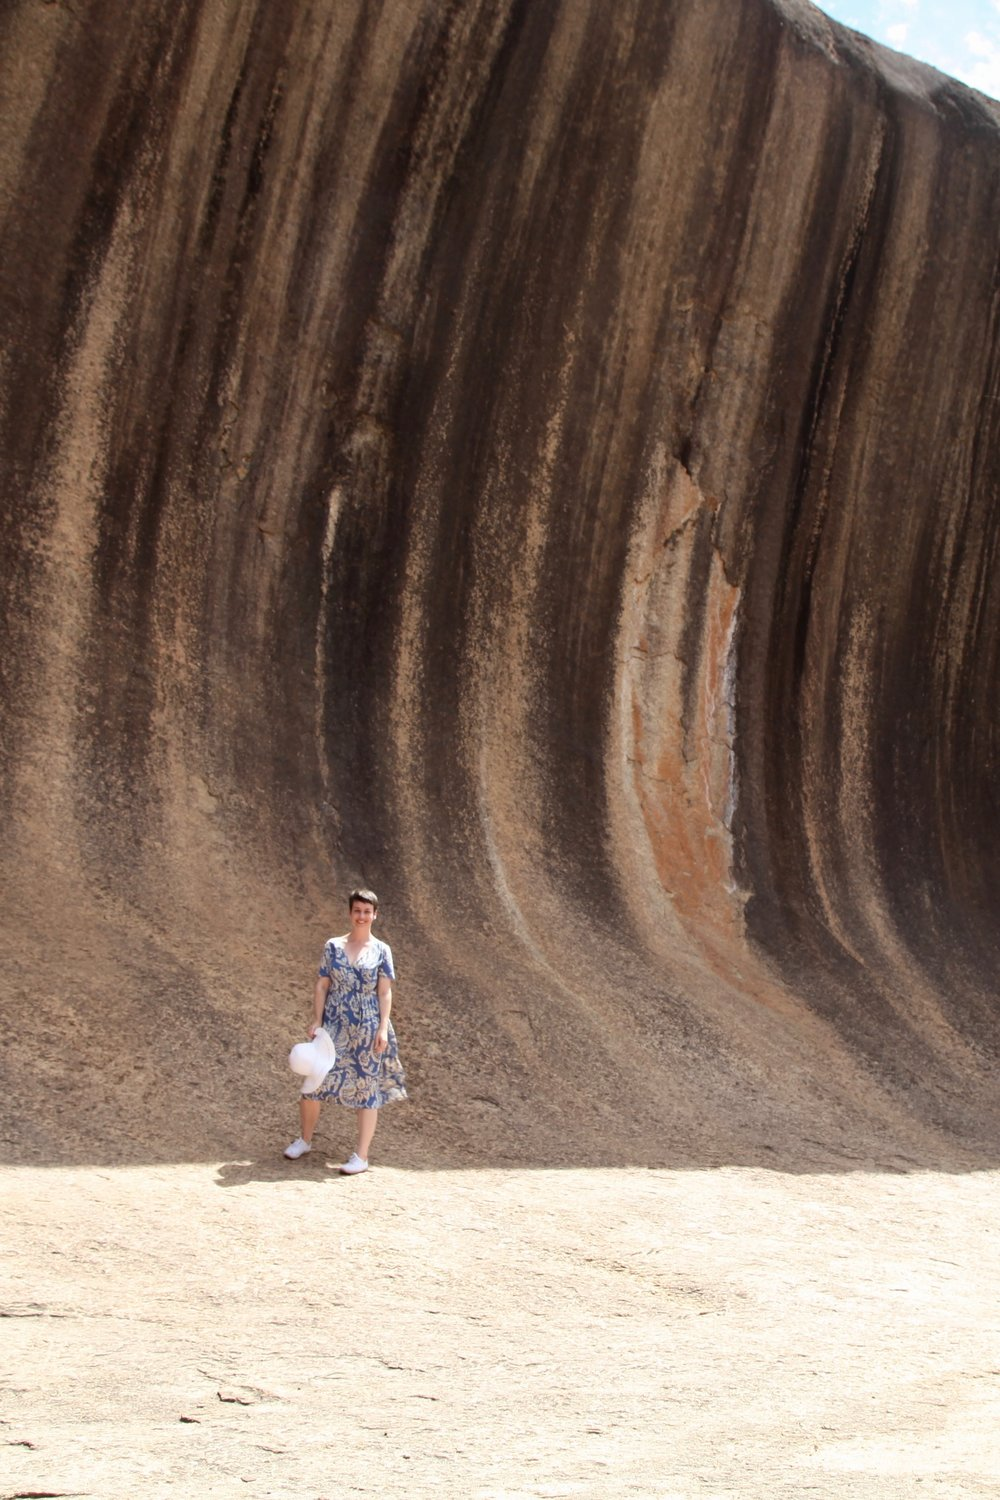 I made it to Wave Rock!